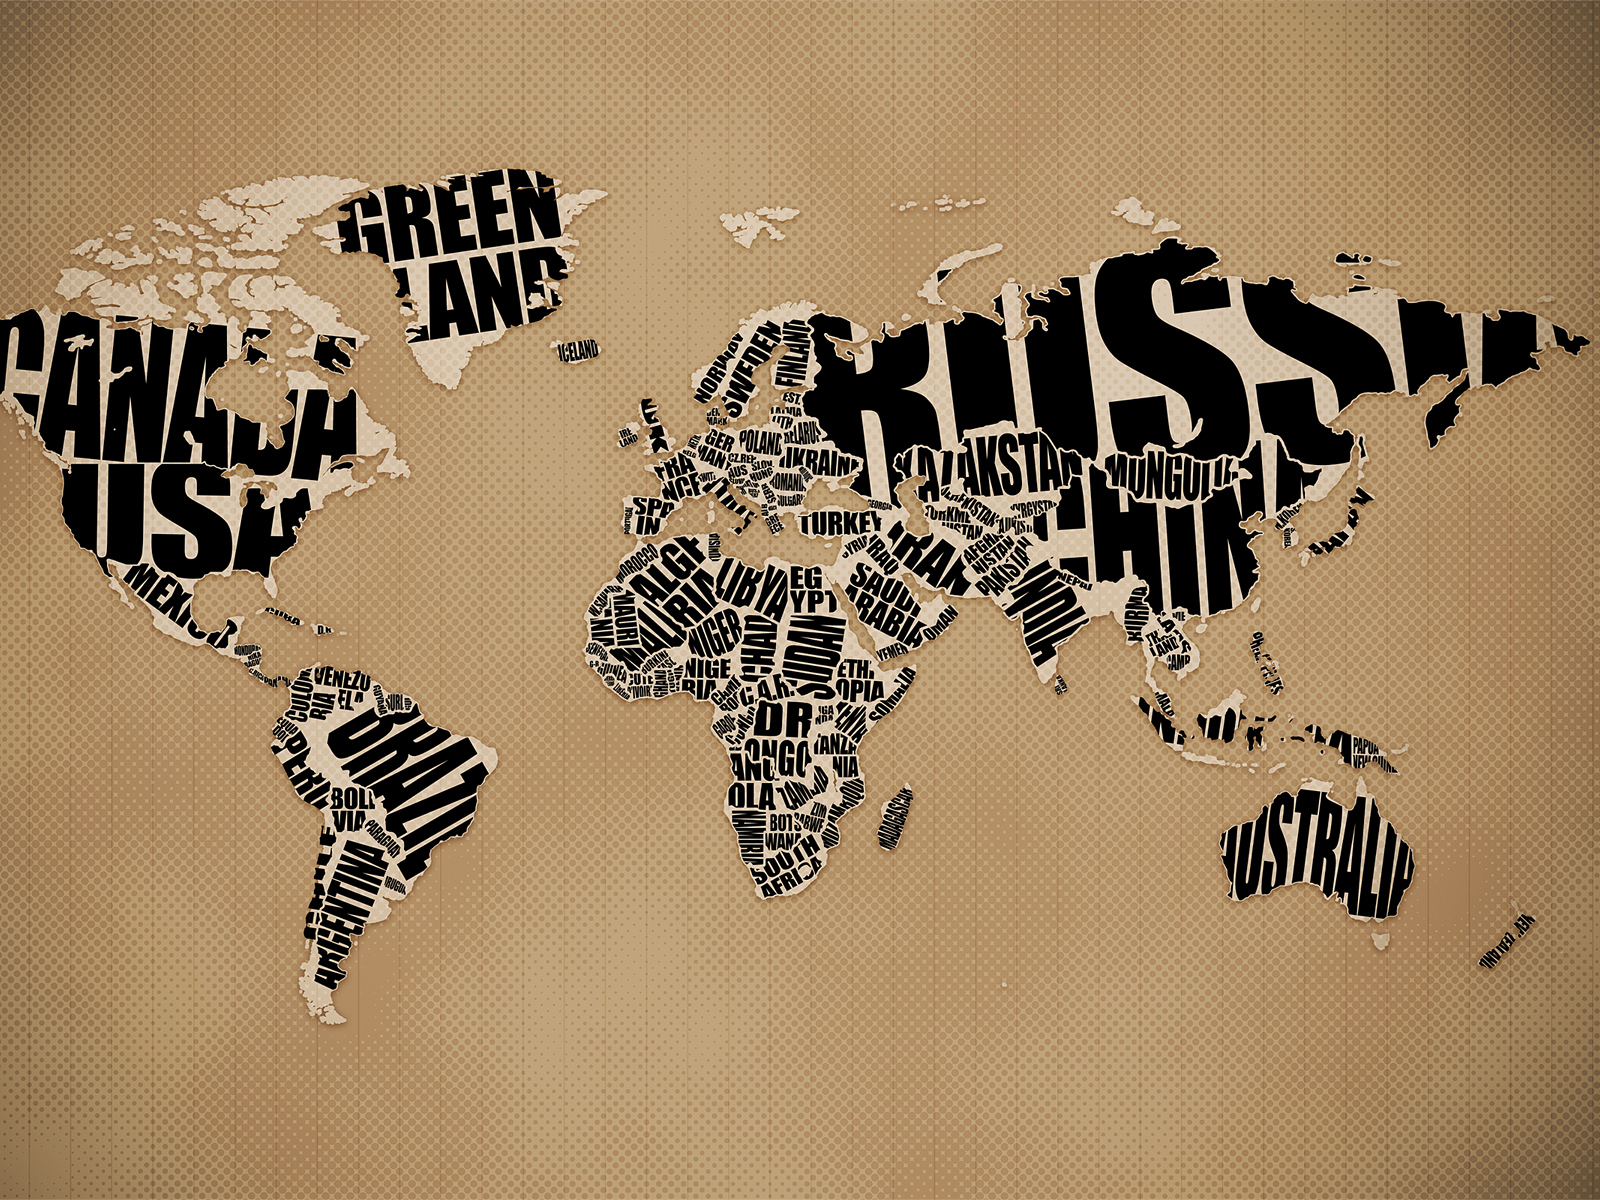 Tags: desktop wallpaper, tag cloud, typography, vlad studio, world map